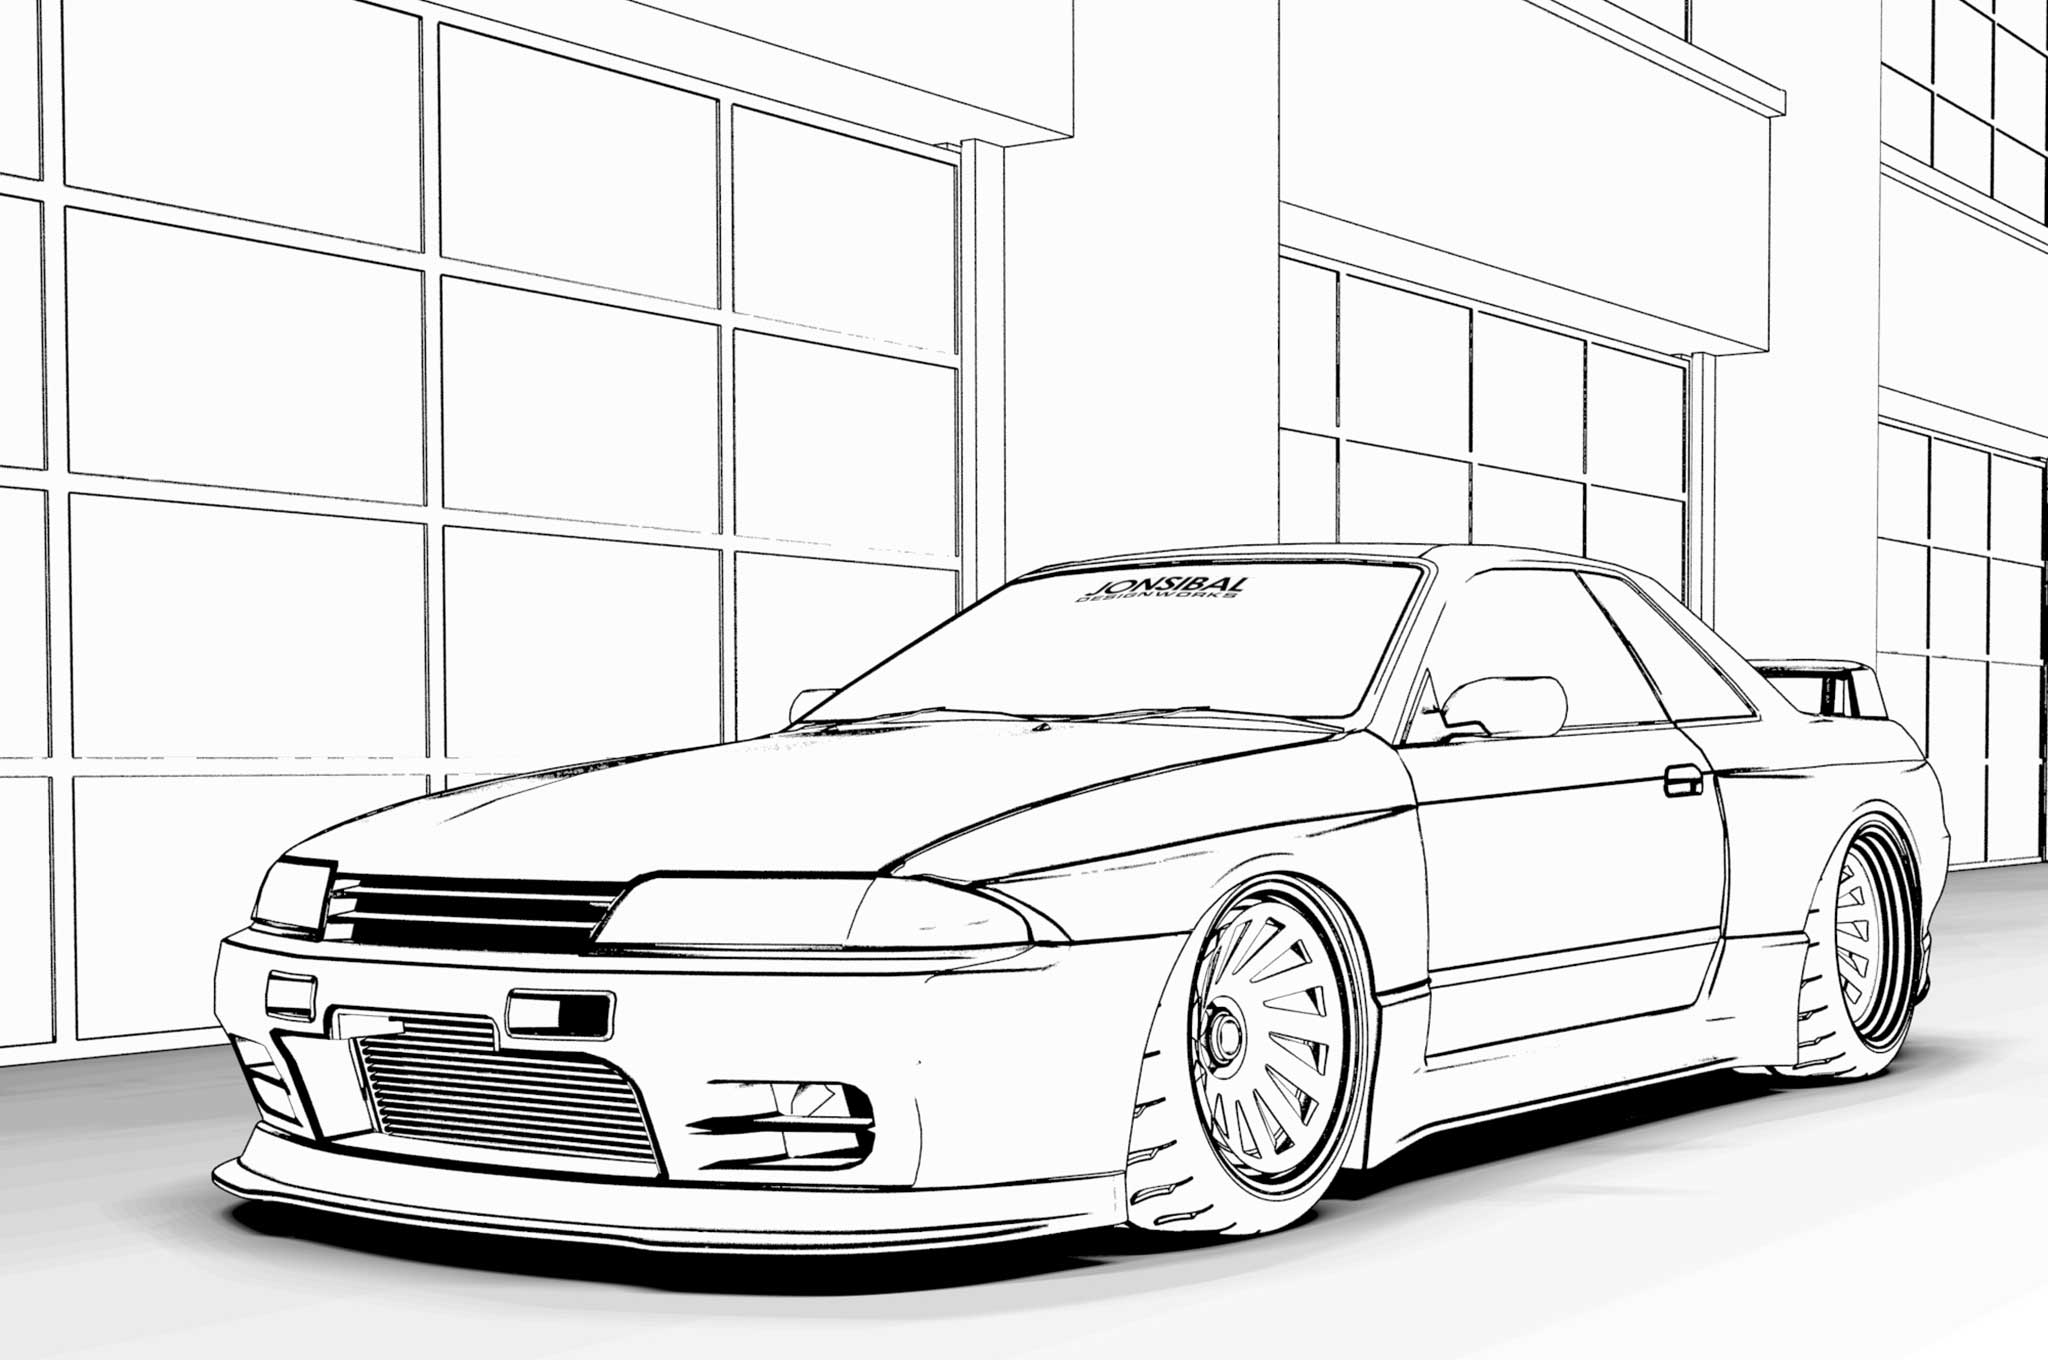 Free Car Colouring Pages Downloads Of Ferrari F40 Toyota Supra Nissan Gt R And More